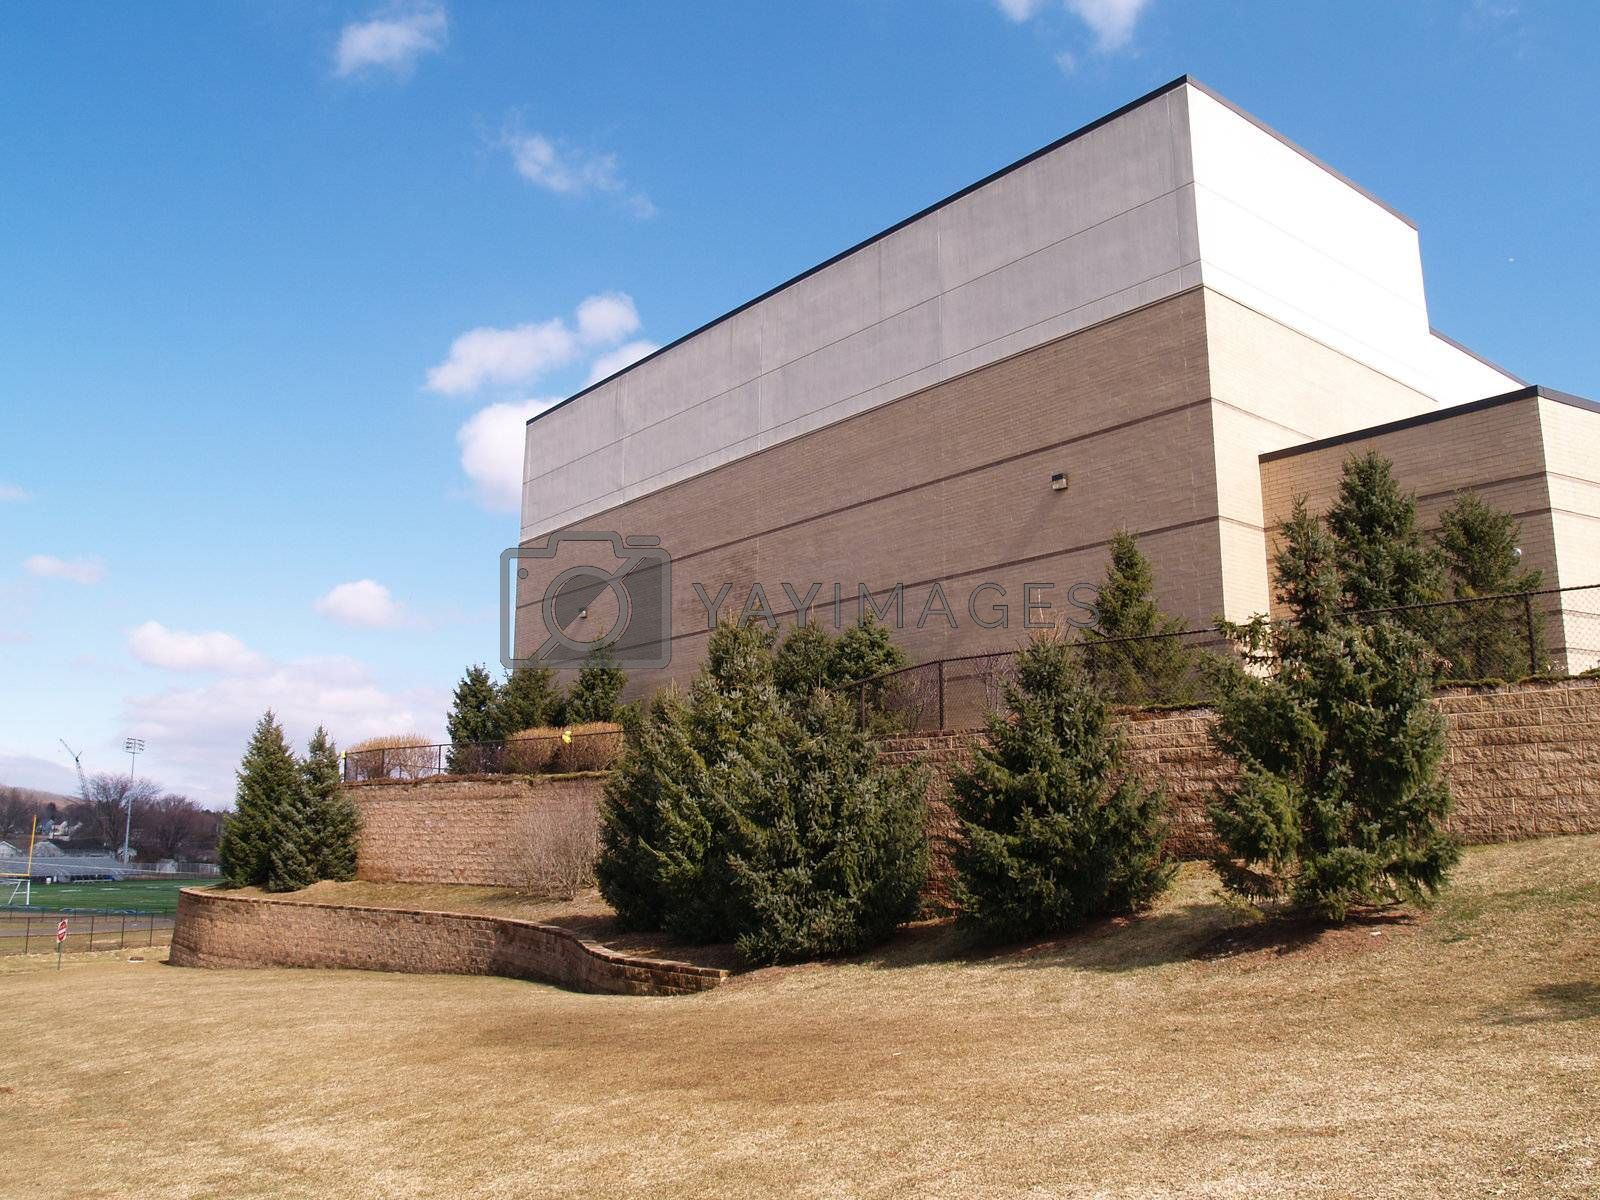 evergreen trees and grass by a modern building